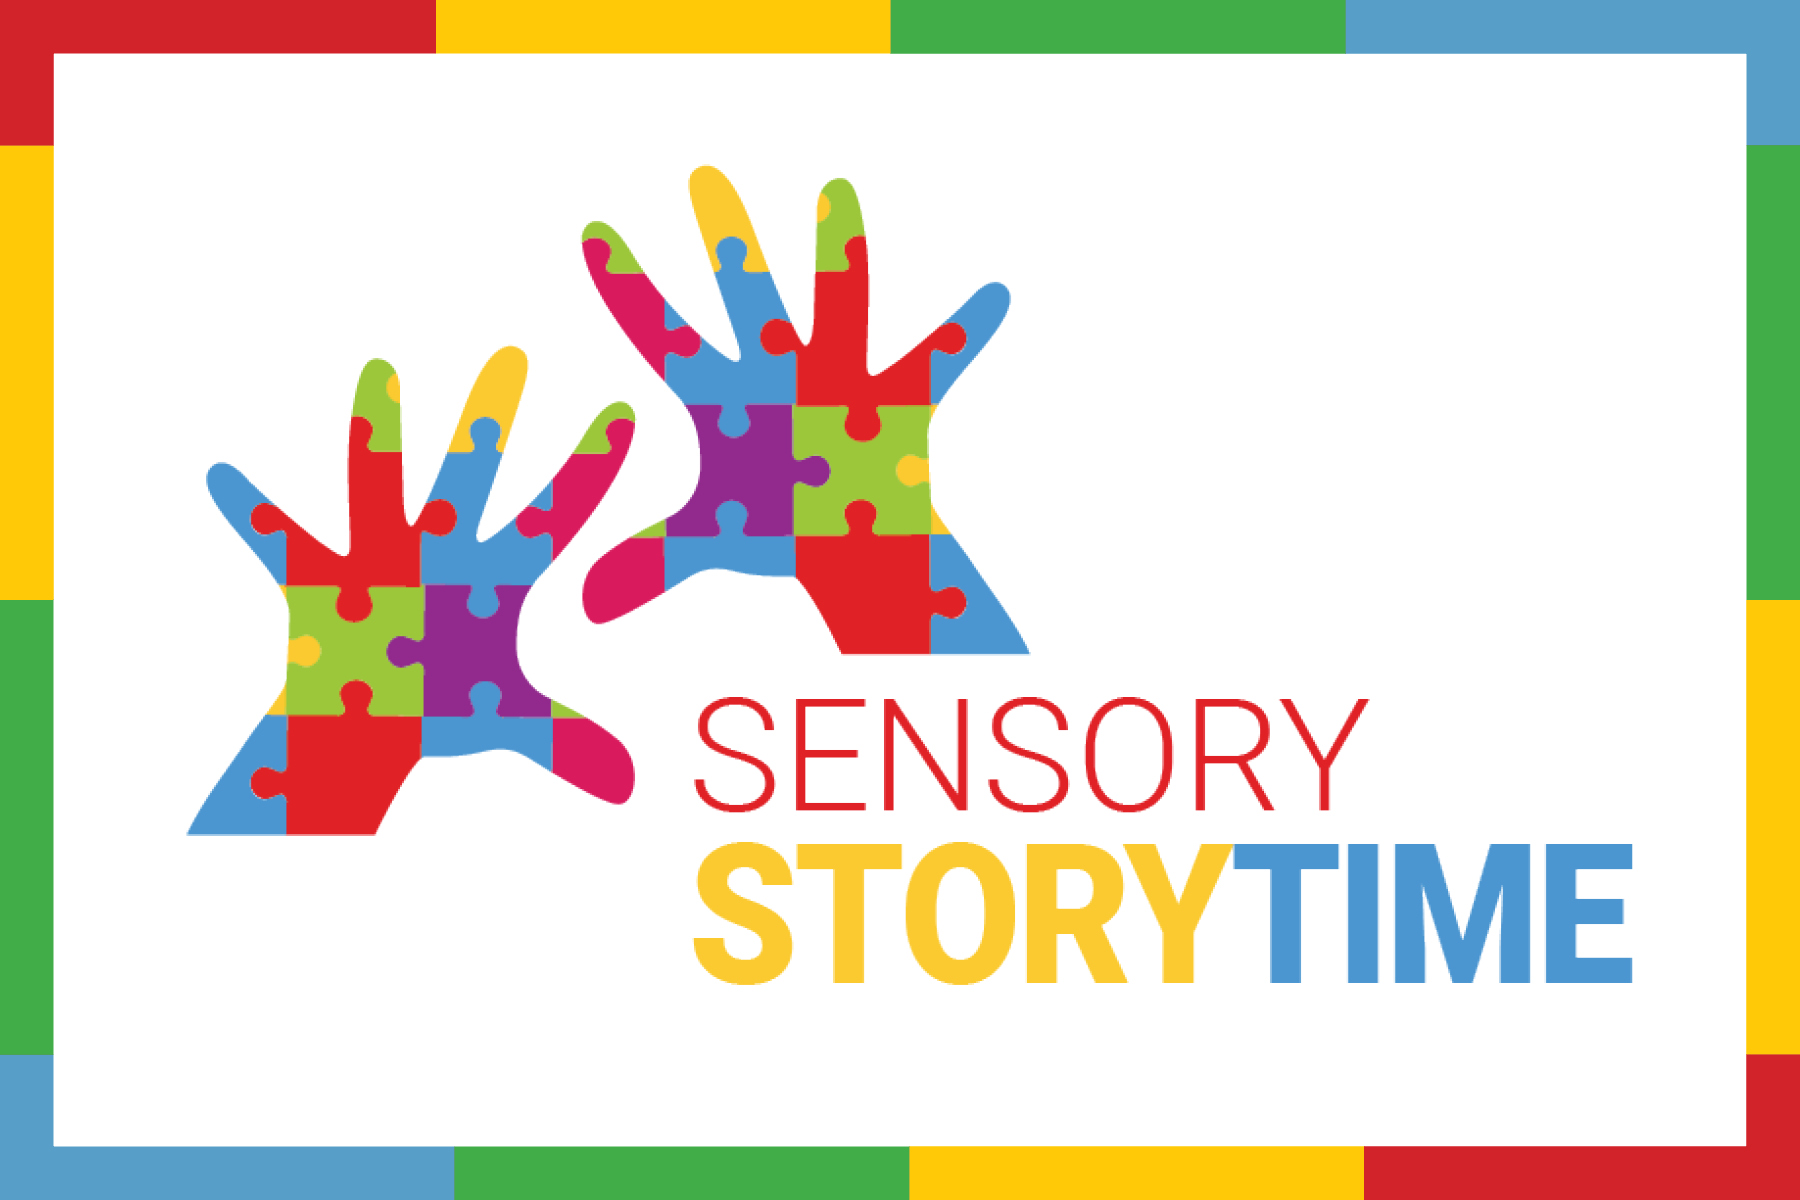 Sensory storytime with hands made from puzzle pieces